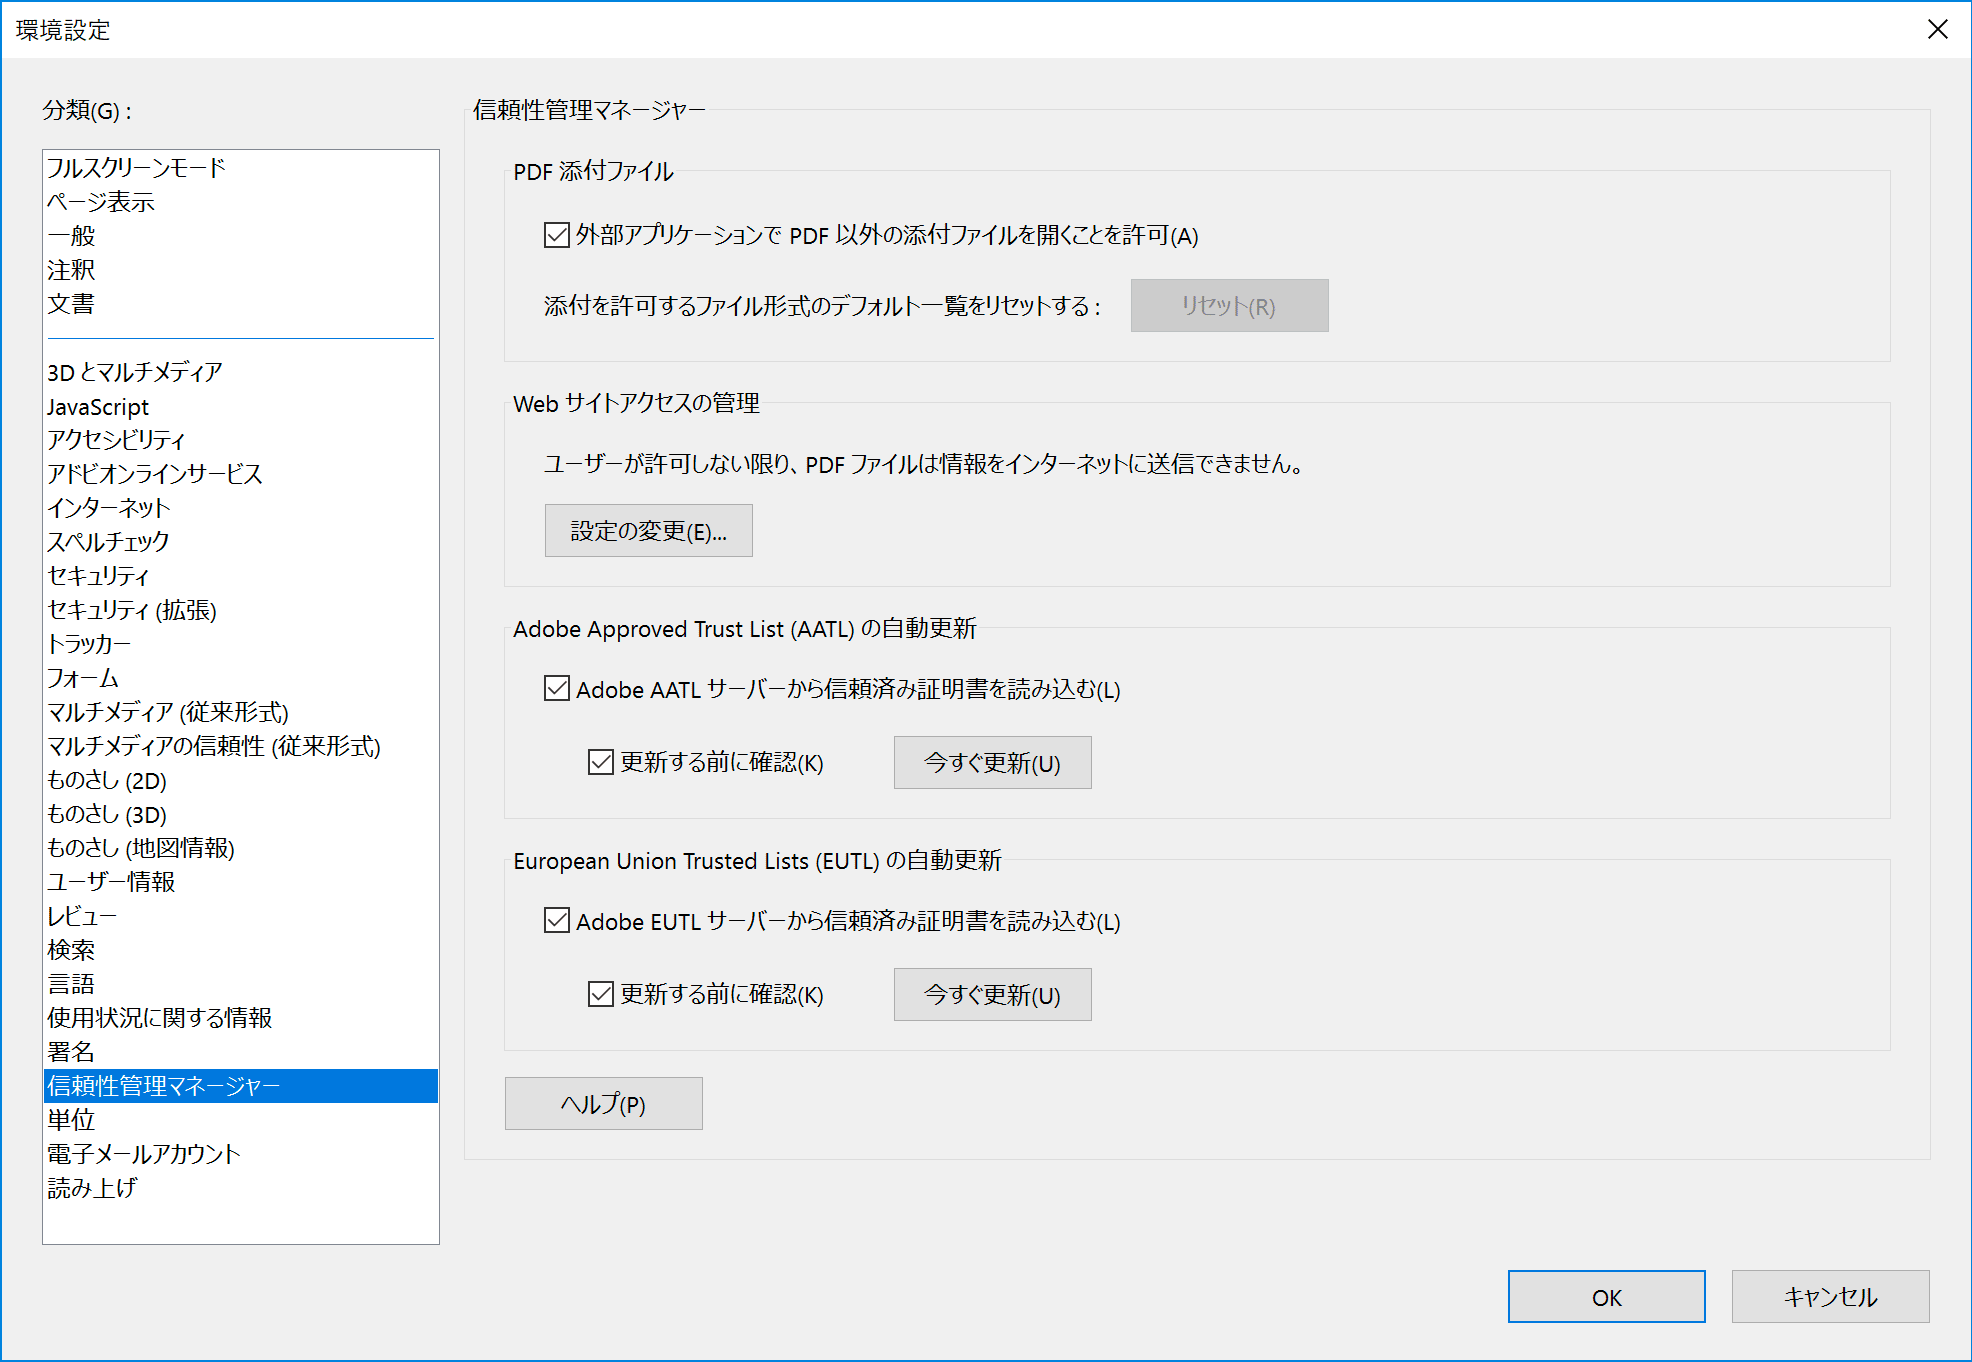 ご質問 Adobe Support Community 8835763